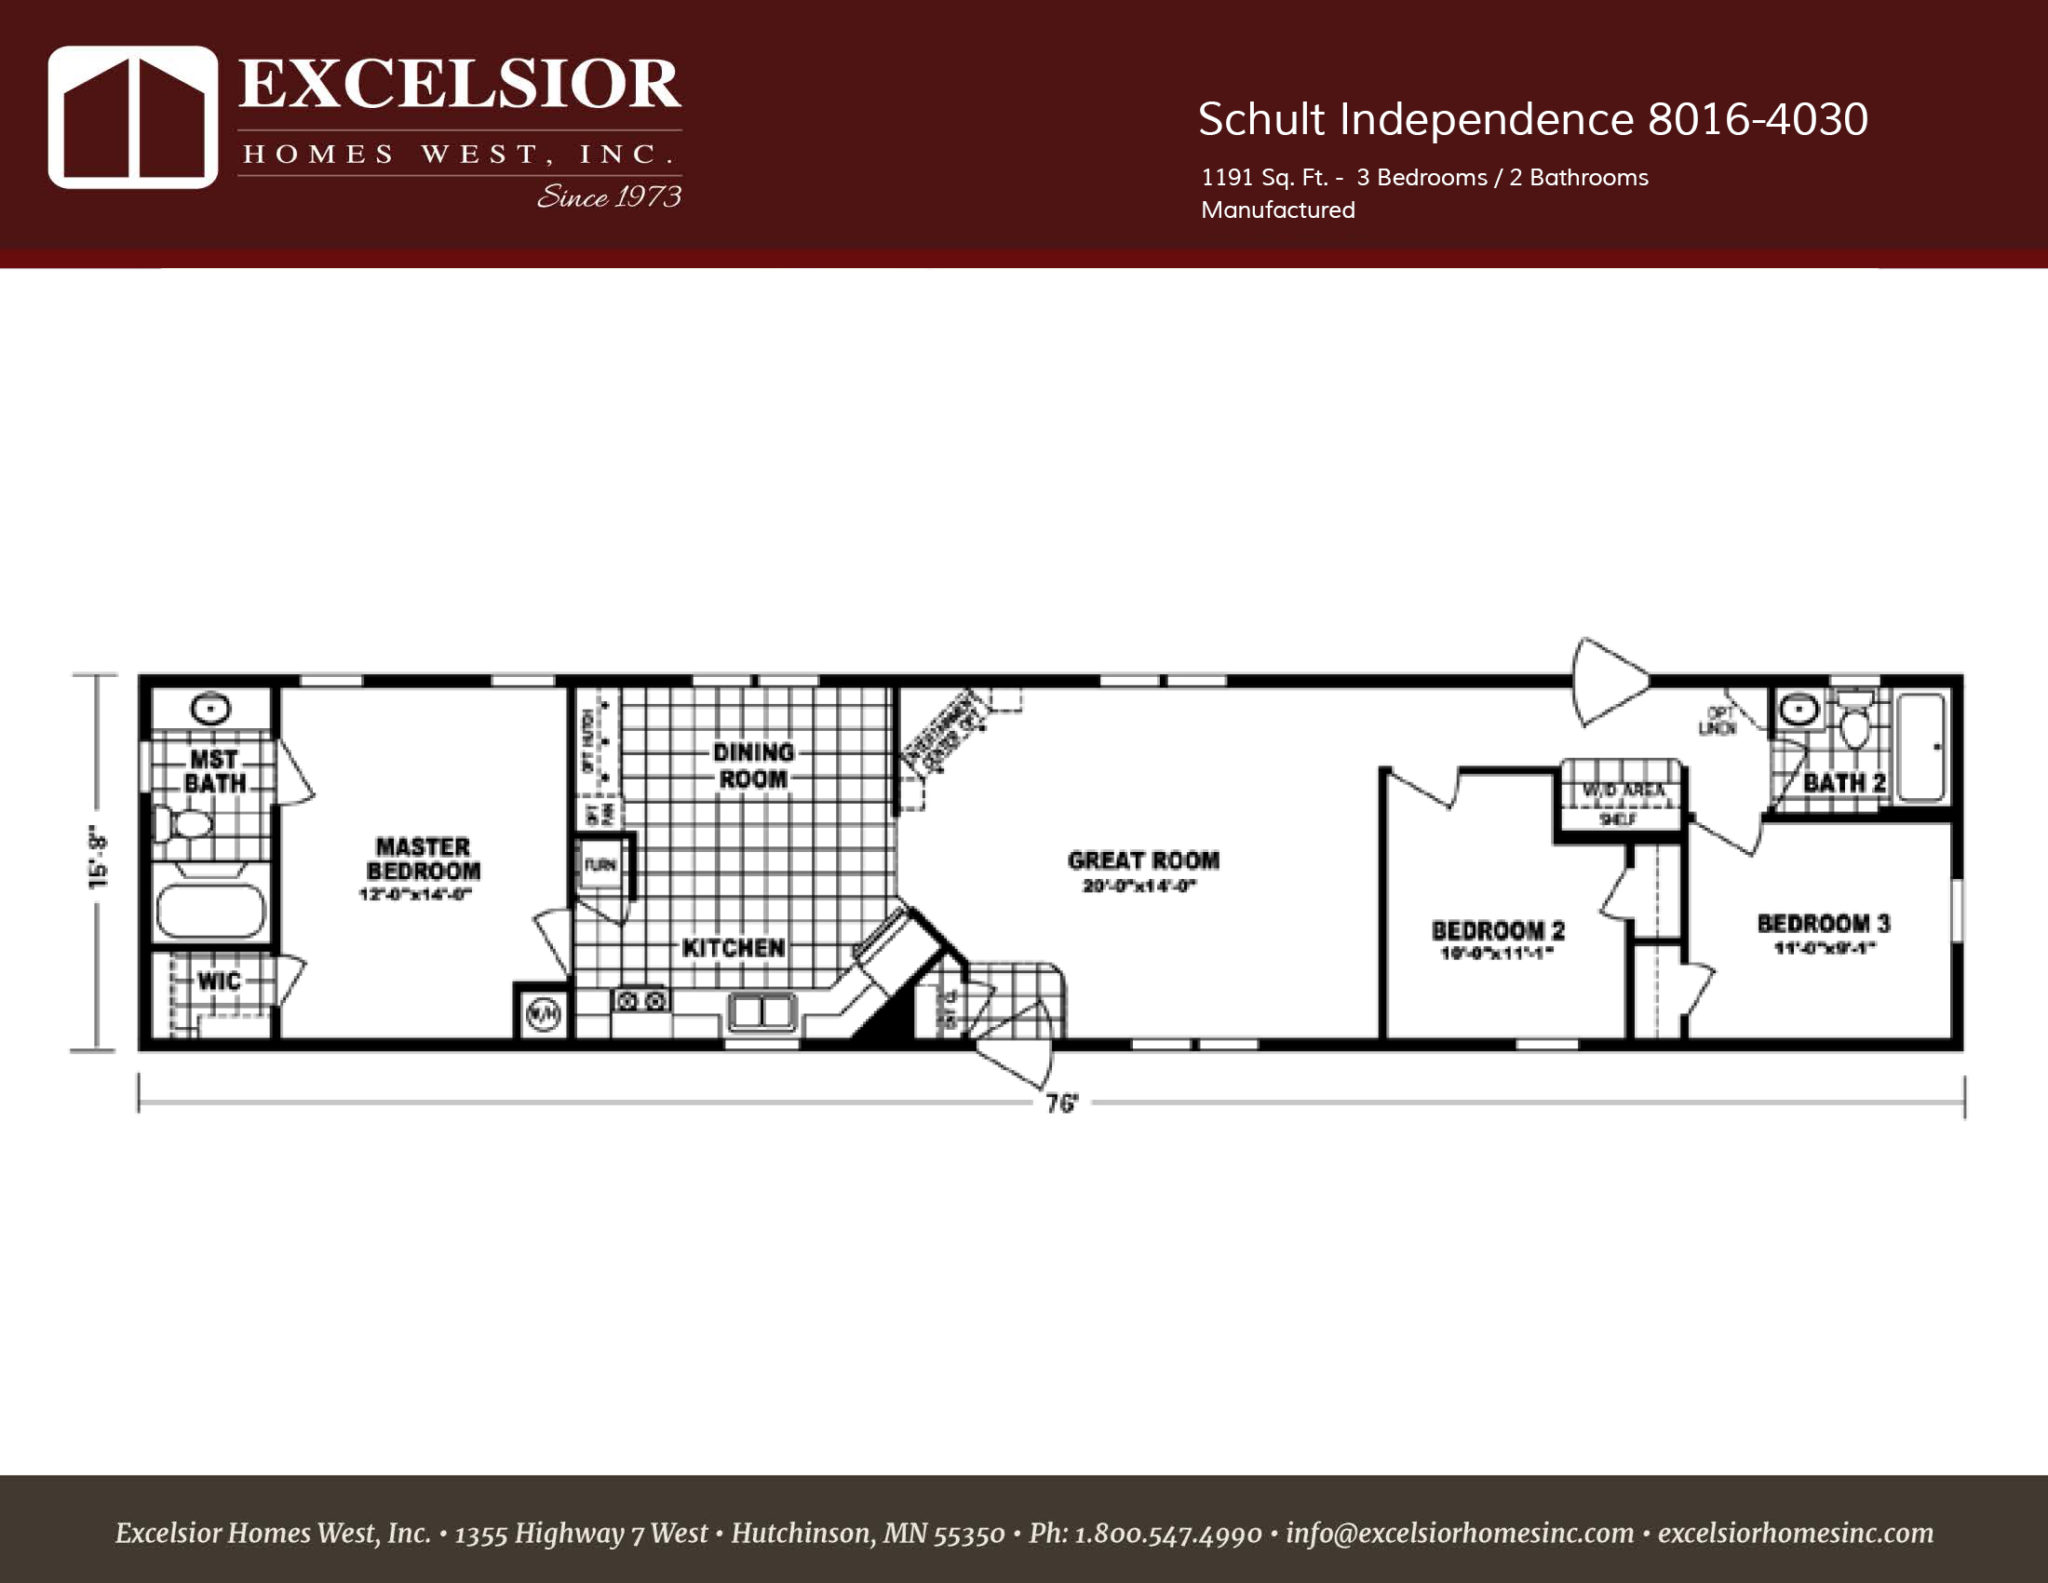 Schult Independence 4030 Single Wide Excelsior Homes